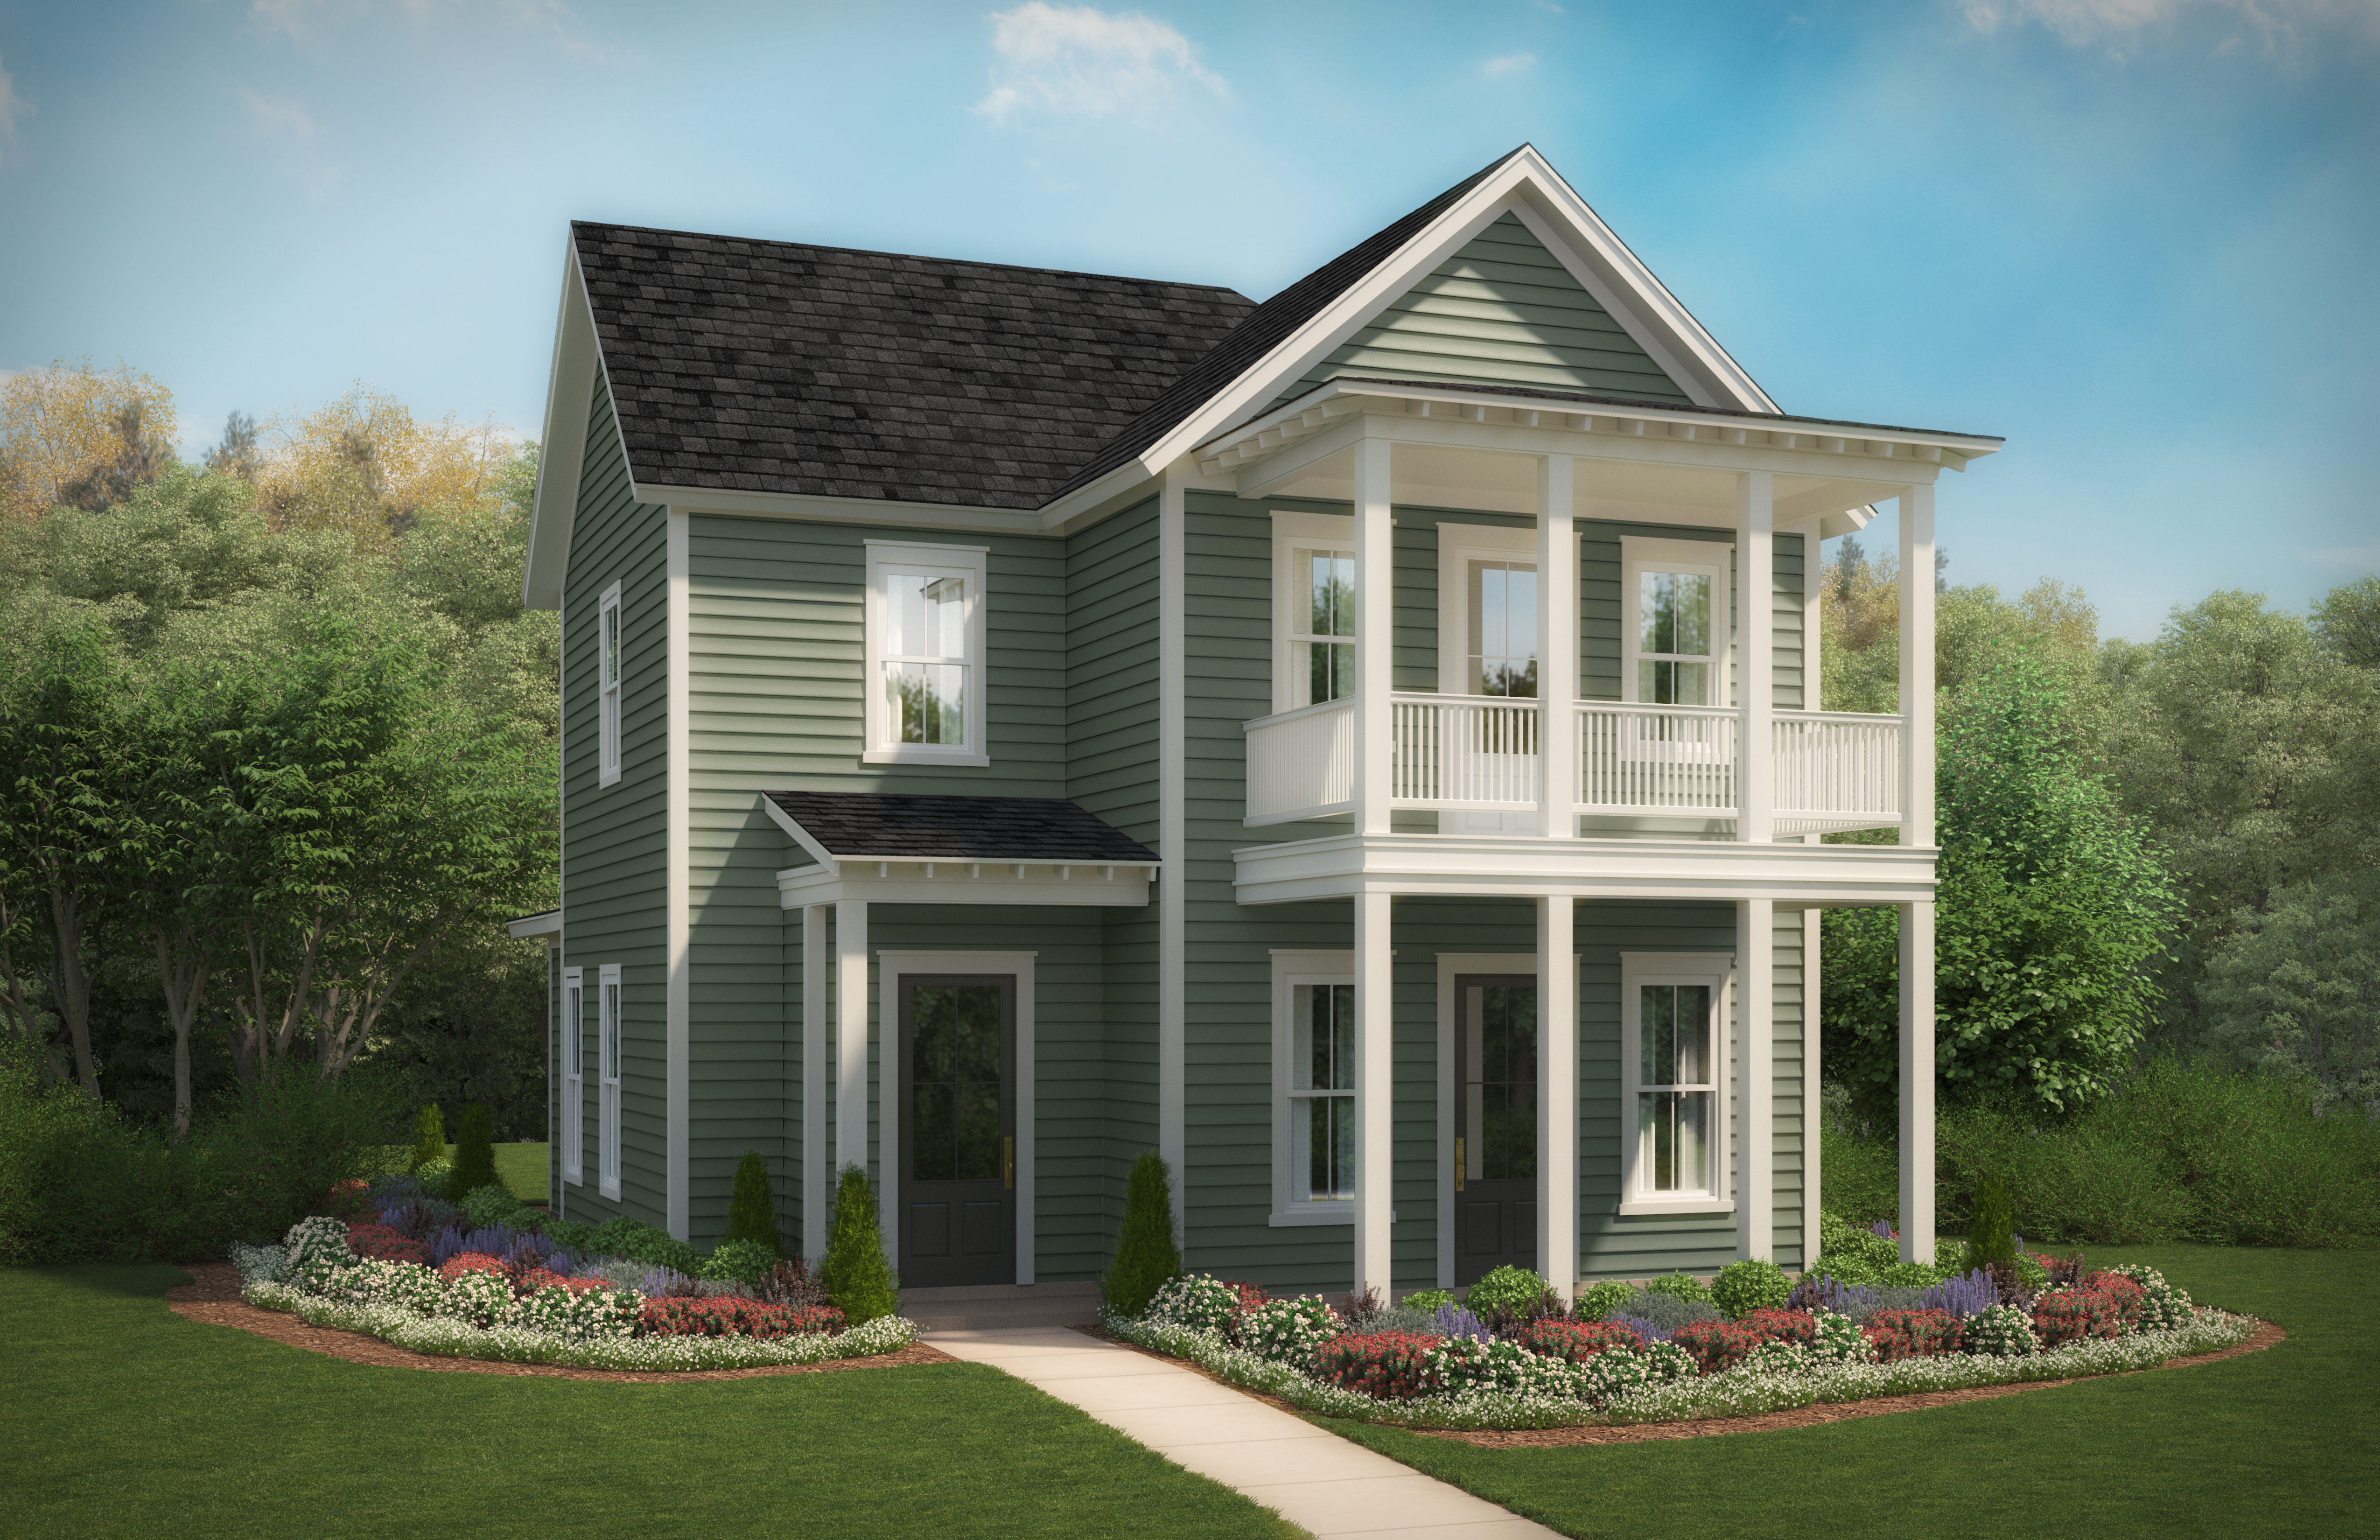 Azalea Plan by Stanley Martin Homes, New Homes in South Carolina